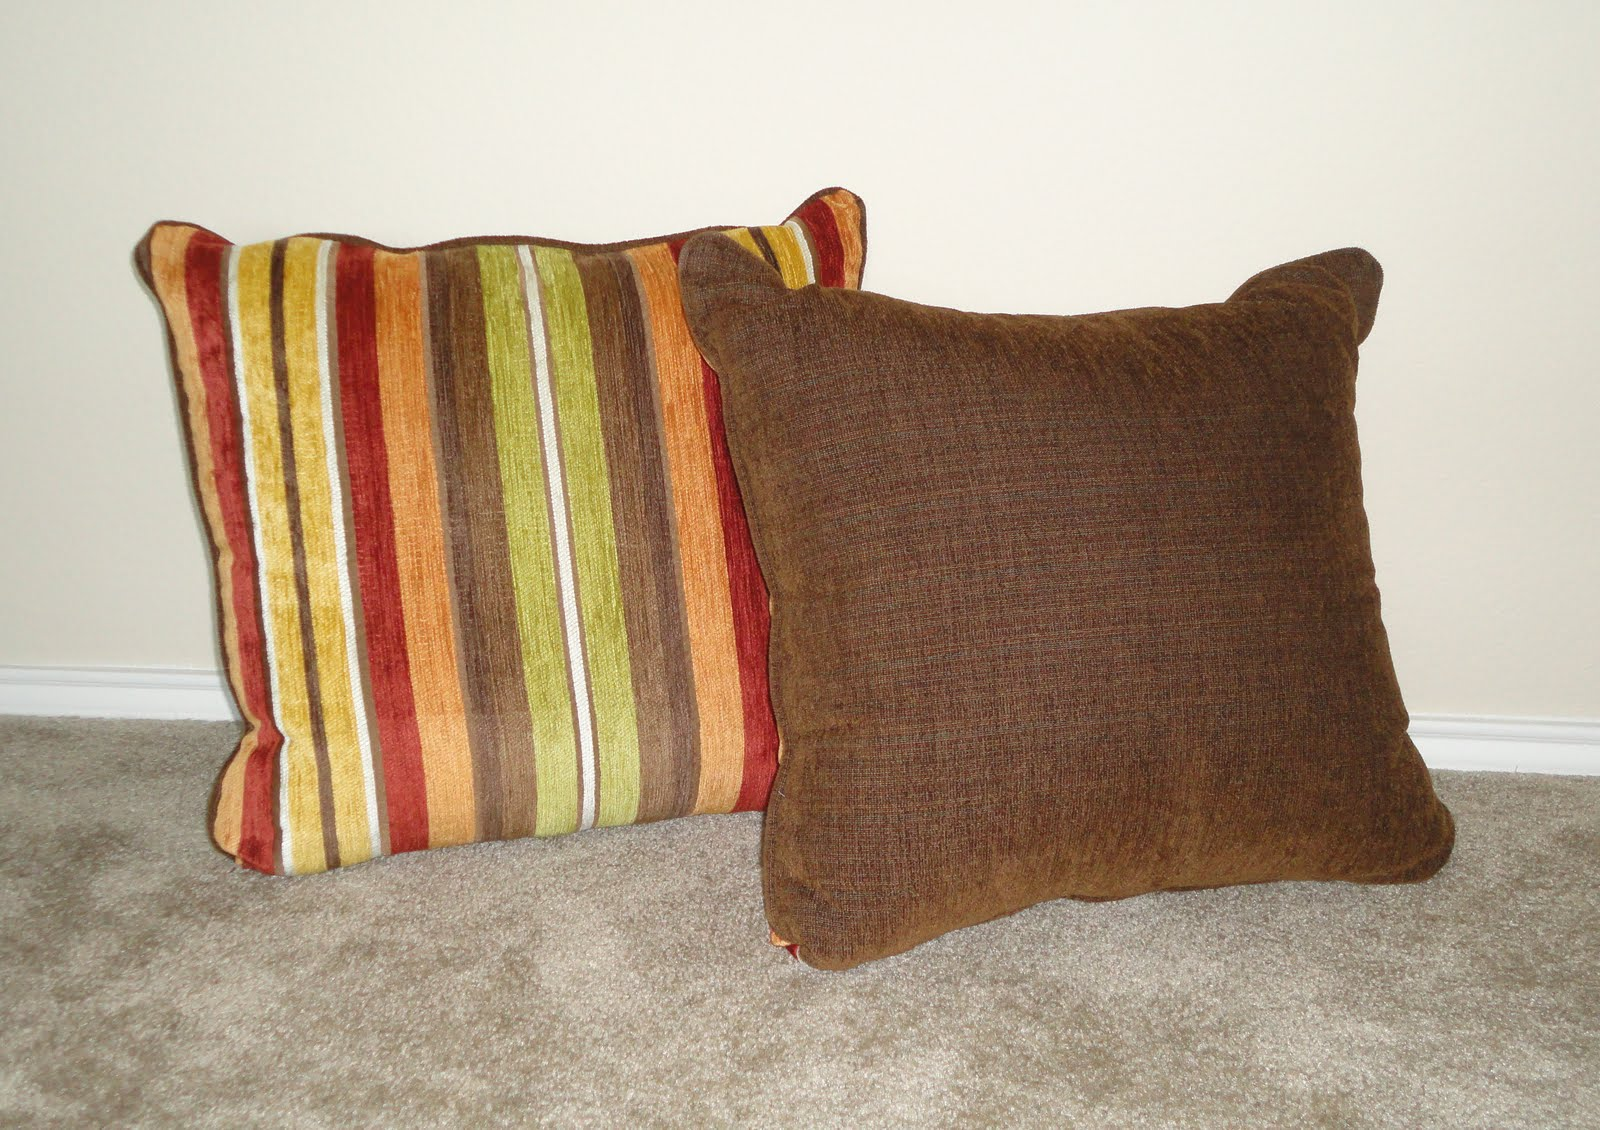 Kinzie s Kreations: Couch Pillows turned Floor Cushions